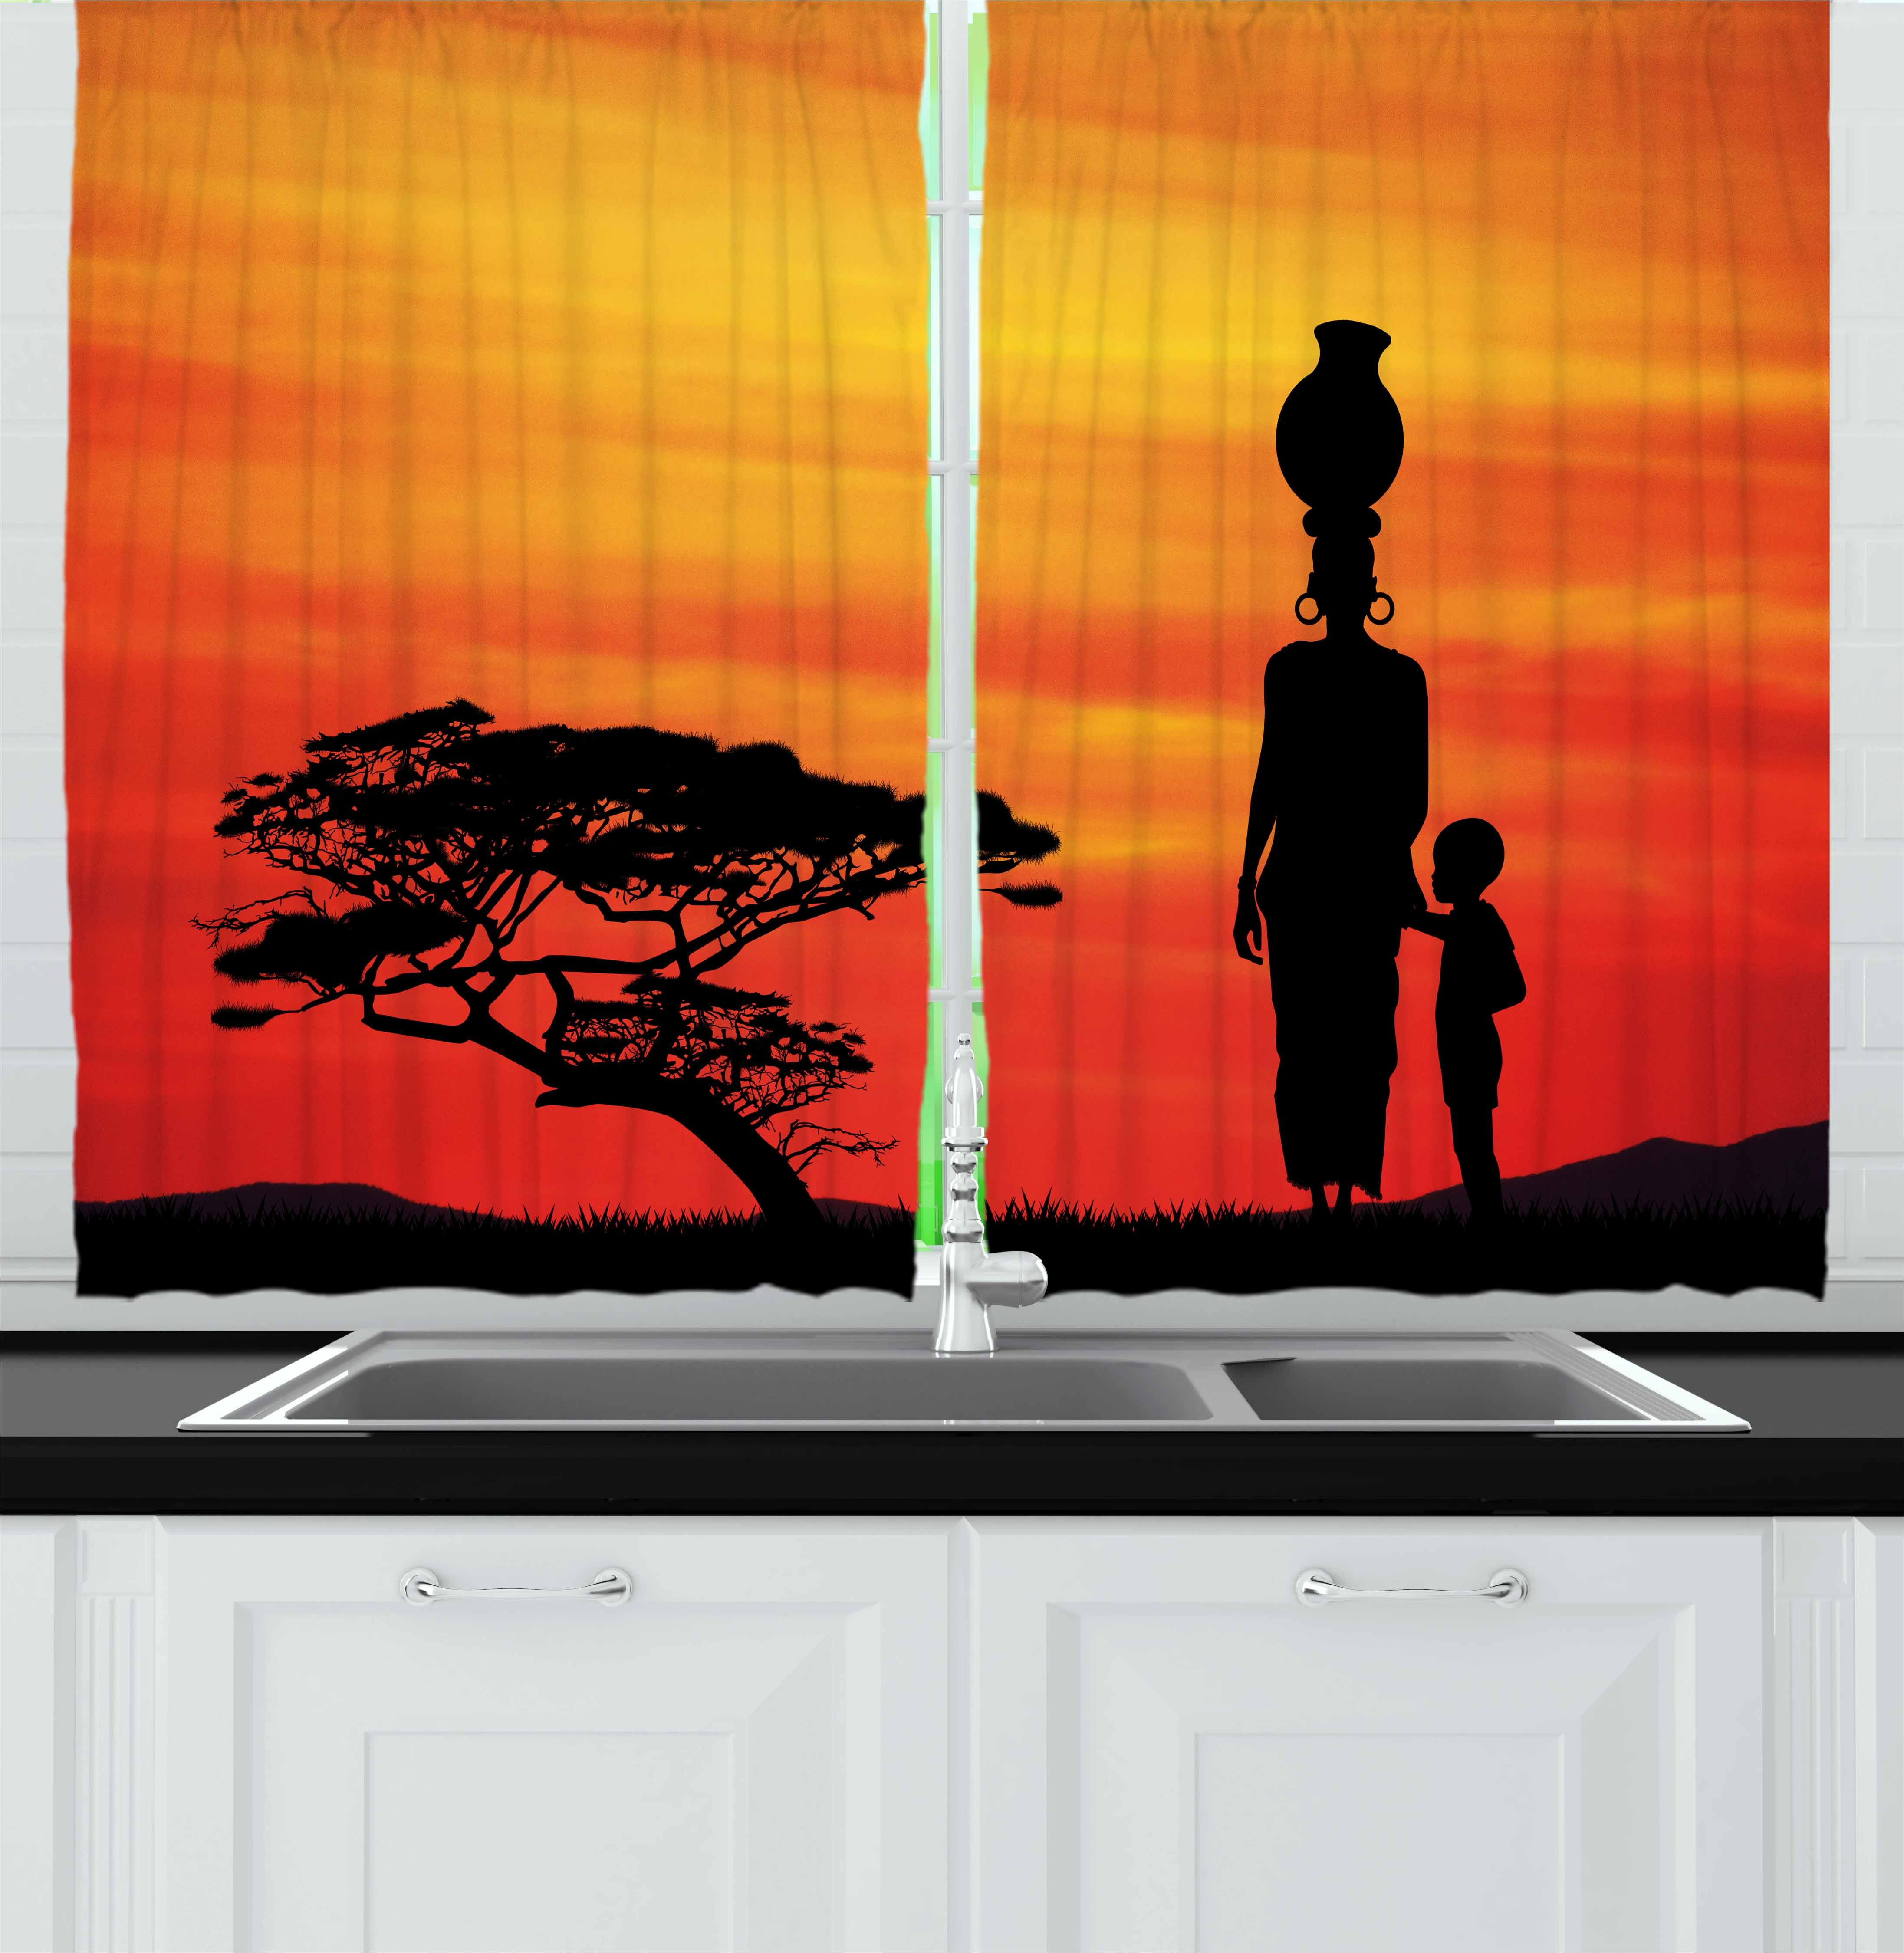 African Woman Curtains 2 Panels Set, Rural Countryside Landscape Mother and Child at Sunset Acacia Tree, Window Drapes for Living Room Bedroom, 55W X 39L Inches, Yellow Scarlet Black, by Ambesonne